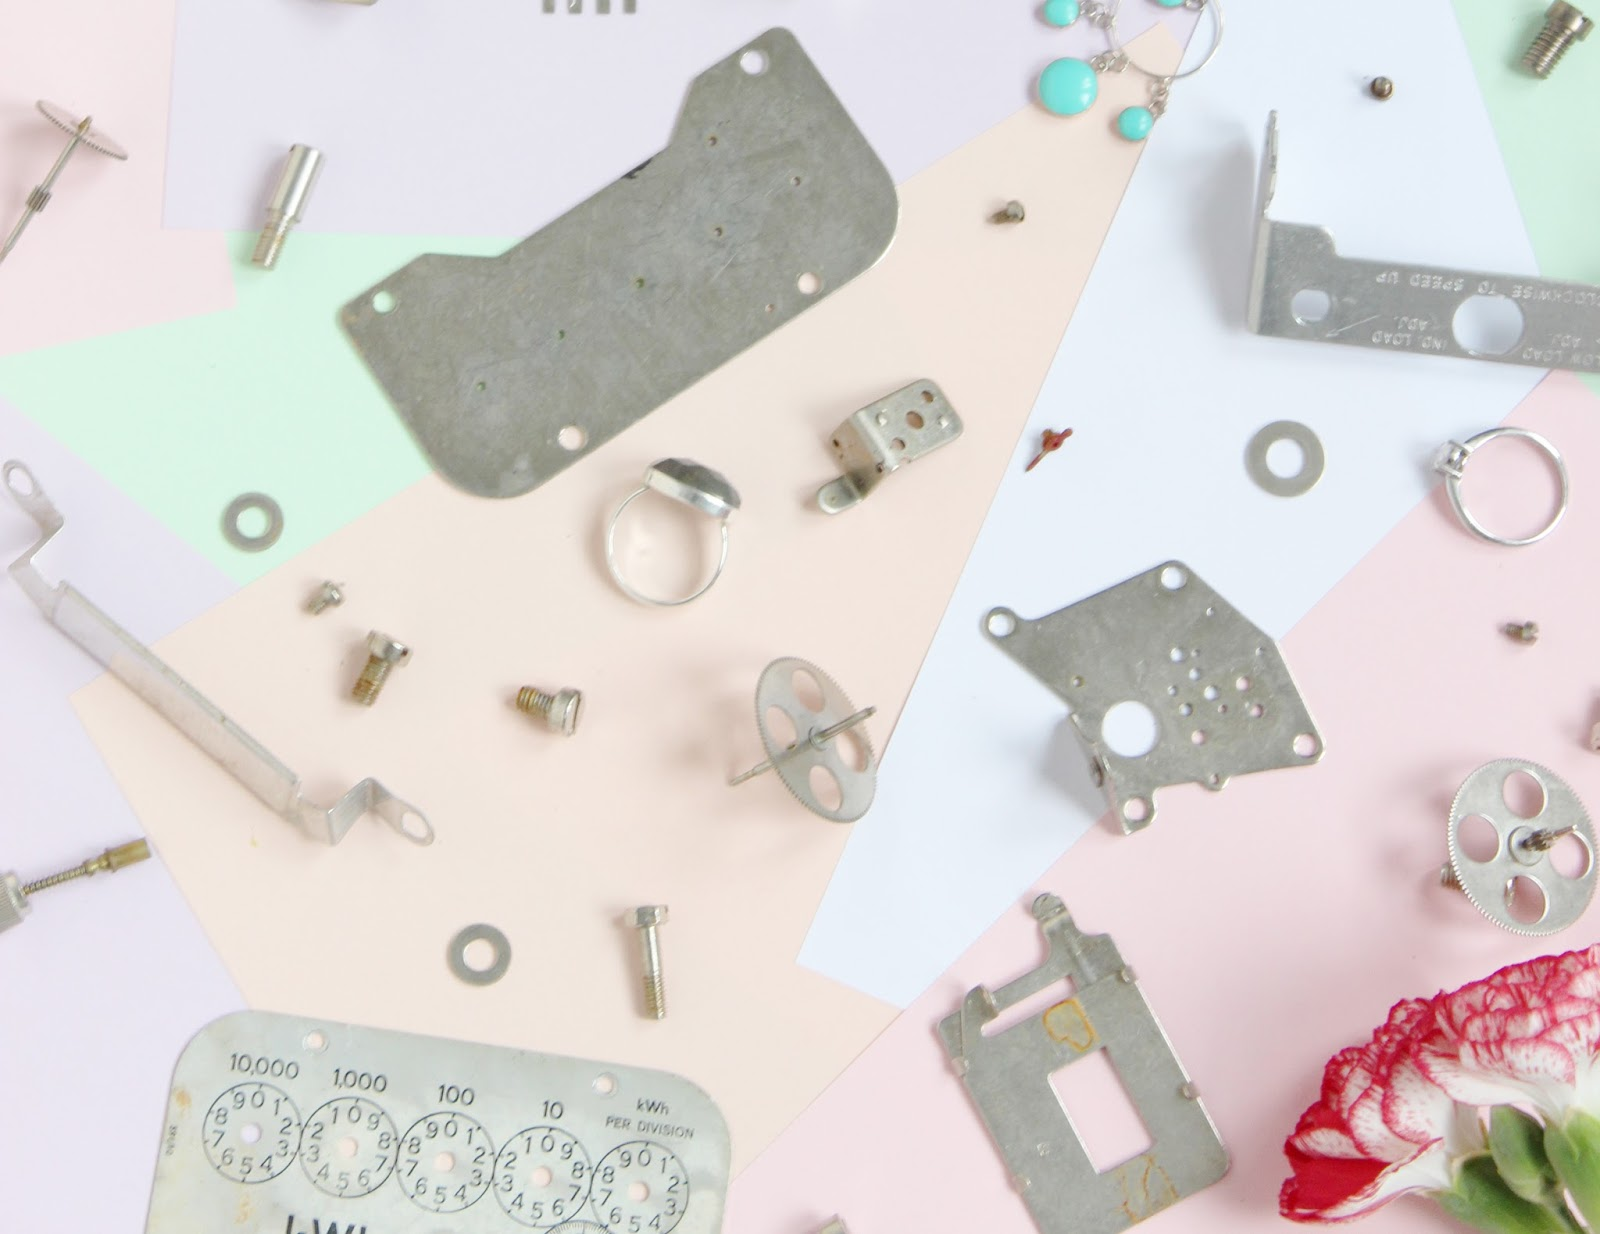 Smart Energy GB jewellery design with electrical meter parts